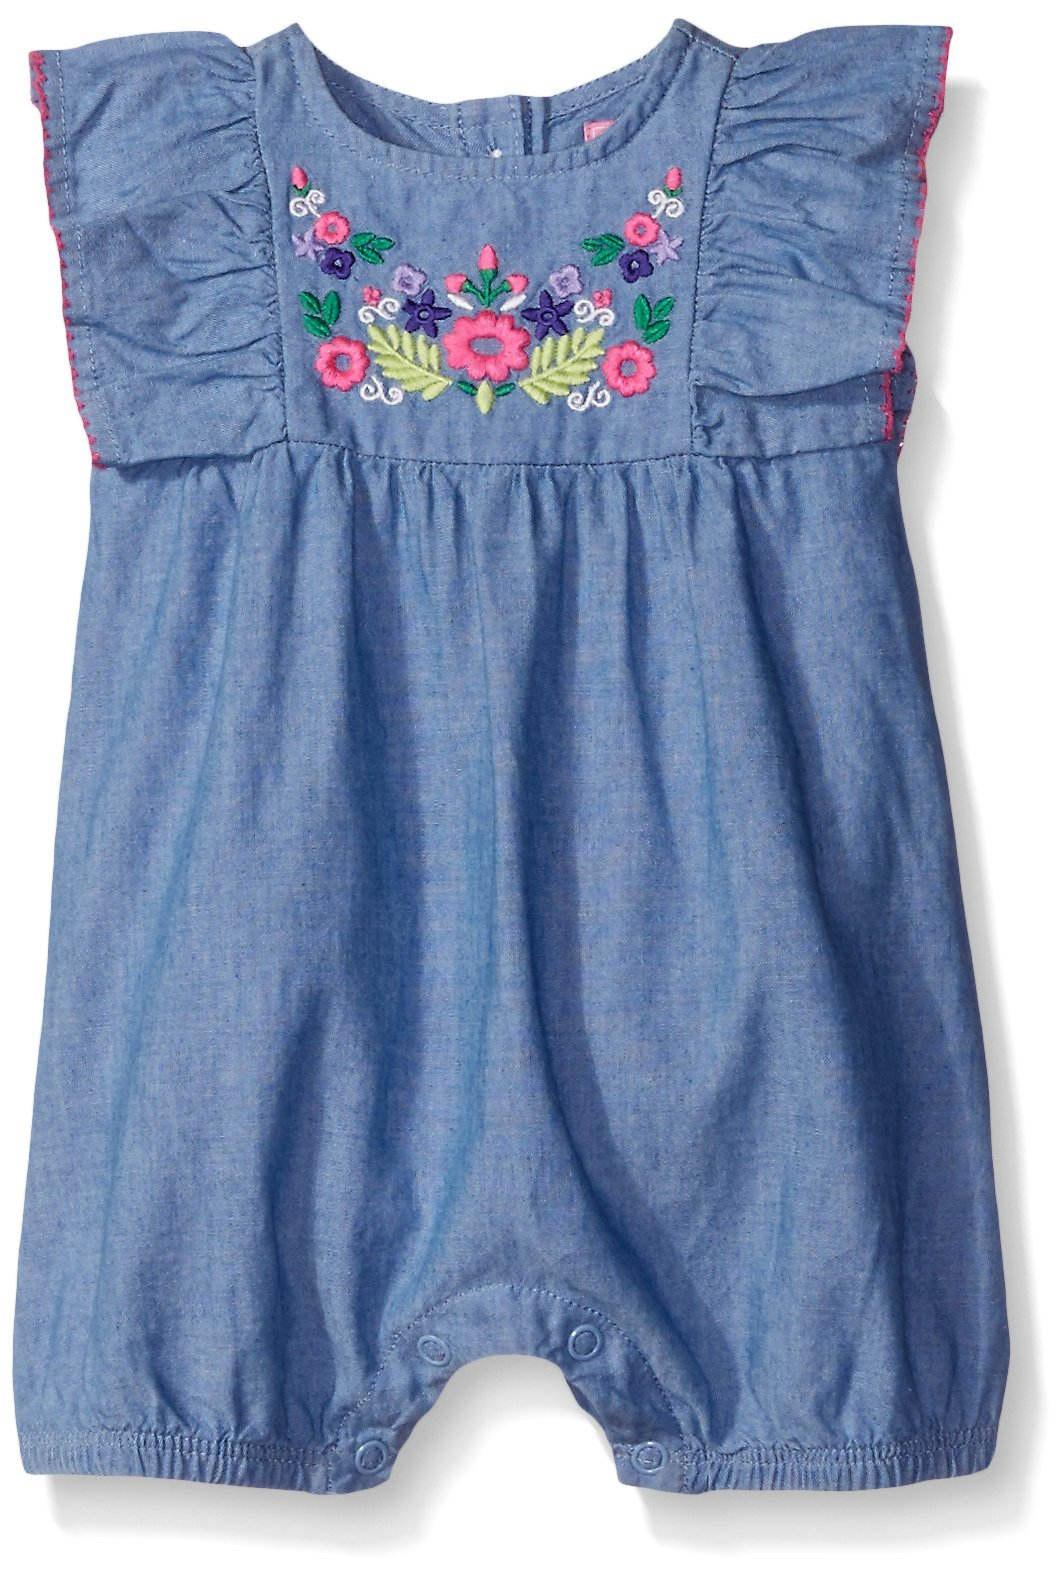 The Children's Place Baby Girls' Sleeveless Romper, Chambray 0887, 0-3 Months